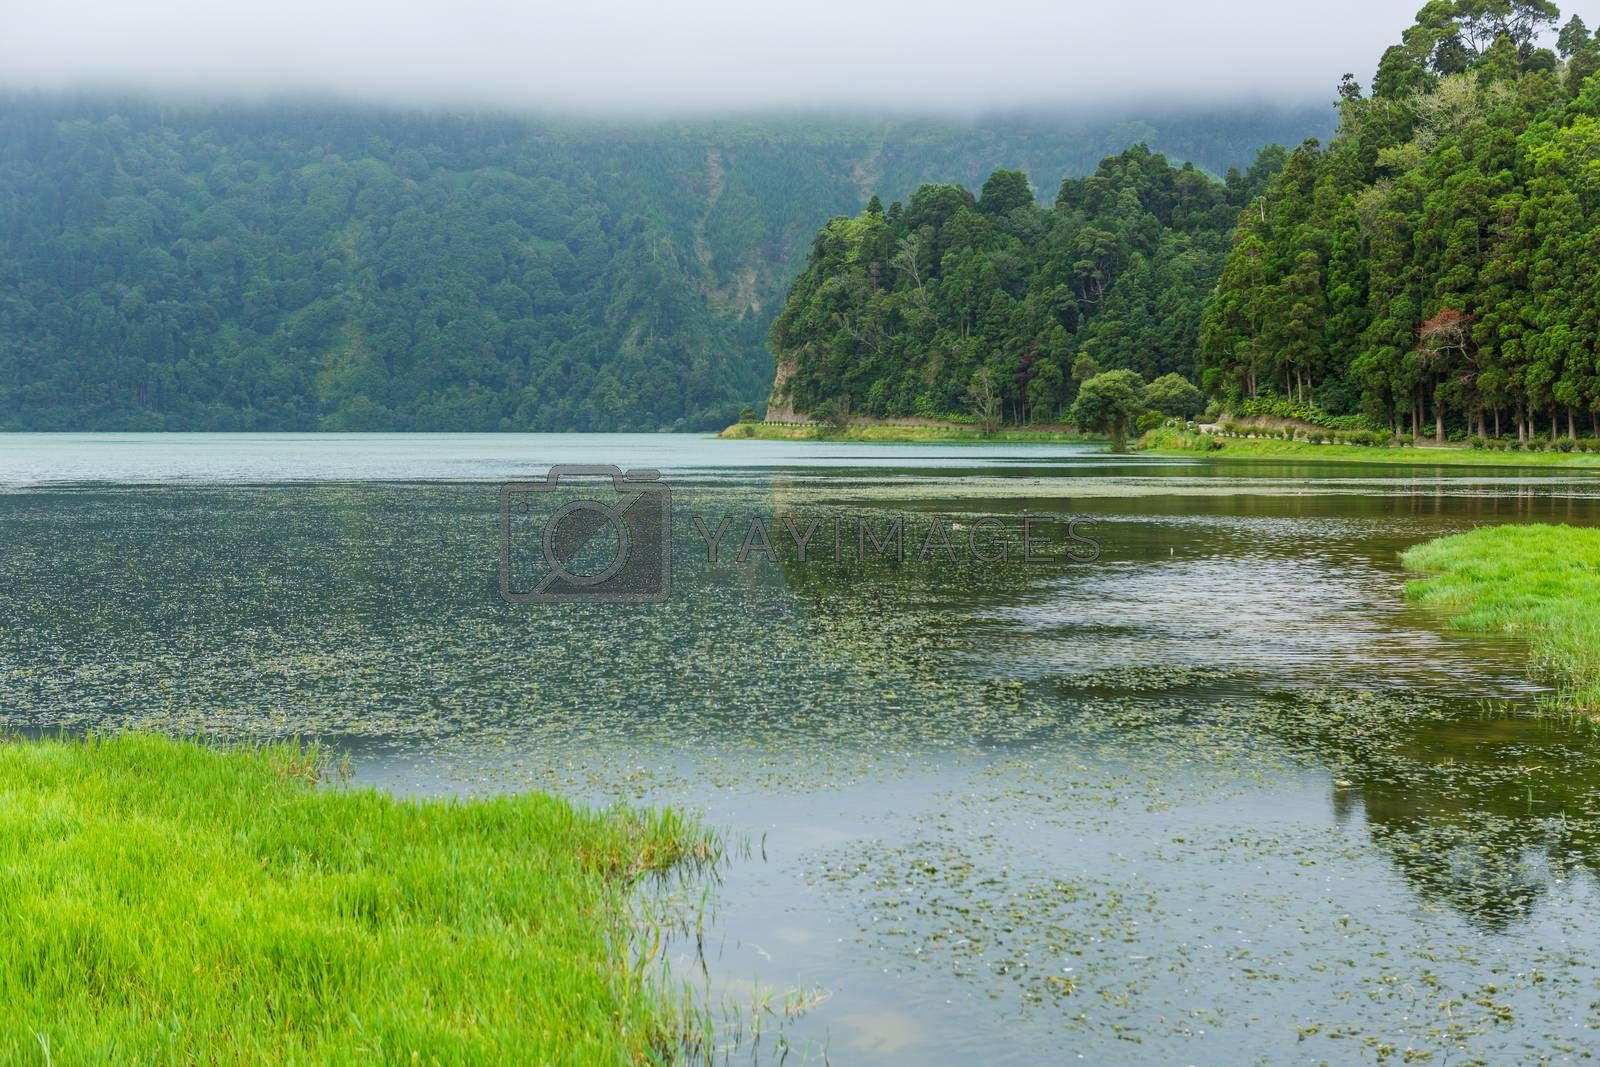 View of the Lake of Sete Cidades in the fog, a volcanic crater lake on Sao Miguel island, Azores, Portugal